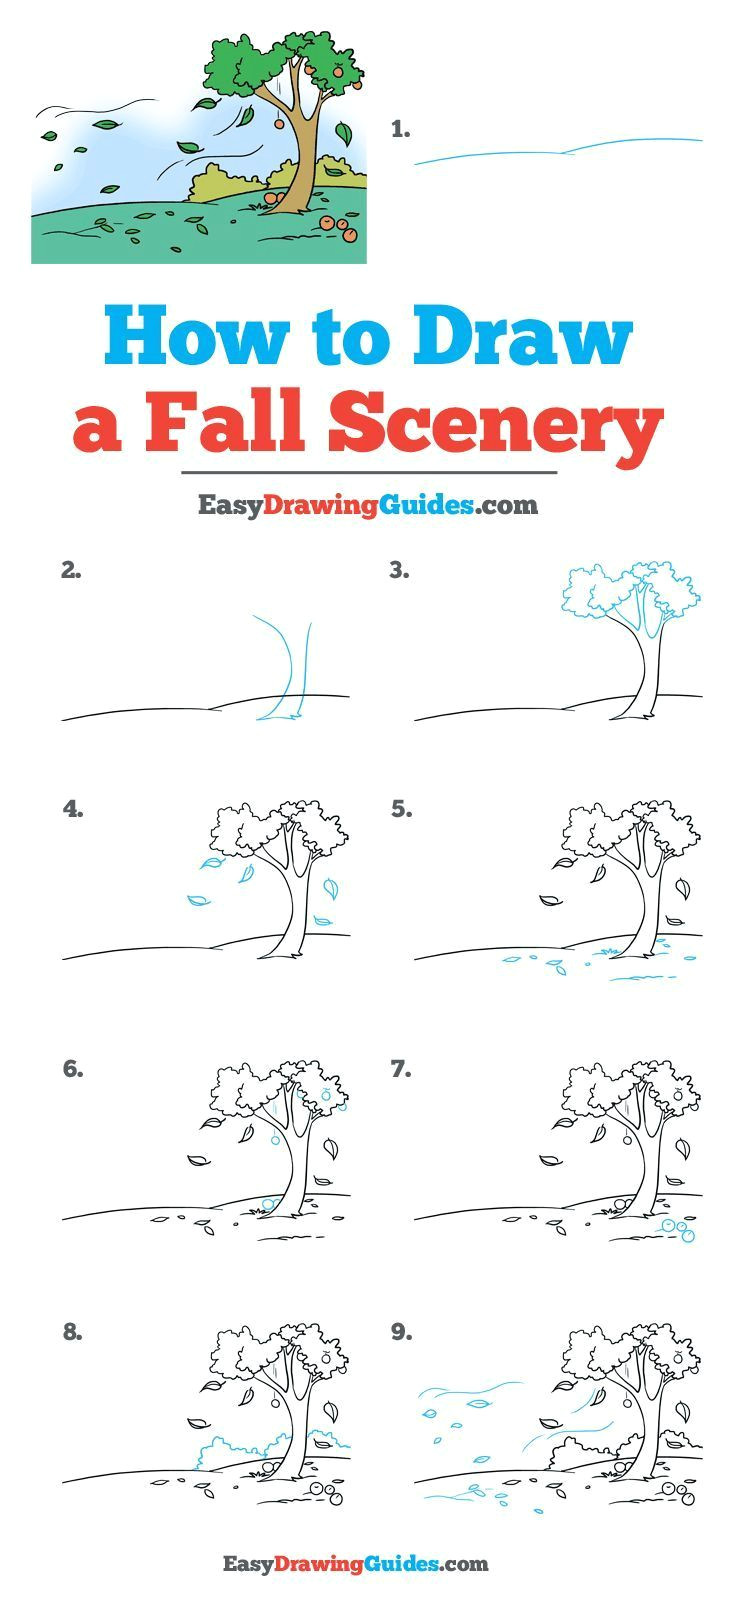 Easy to Draw Fall Pictures How to Draw Fall Scenery Really Easy Drawing Tutorial